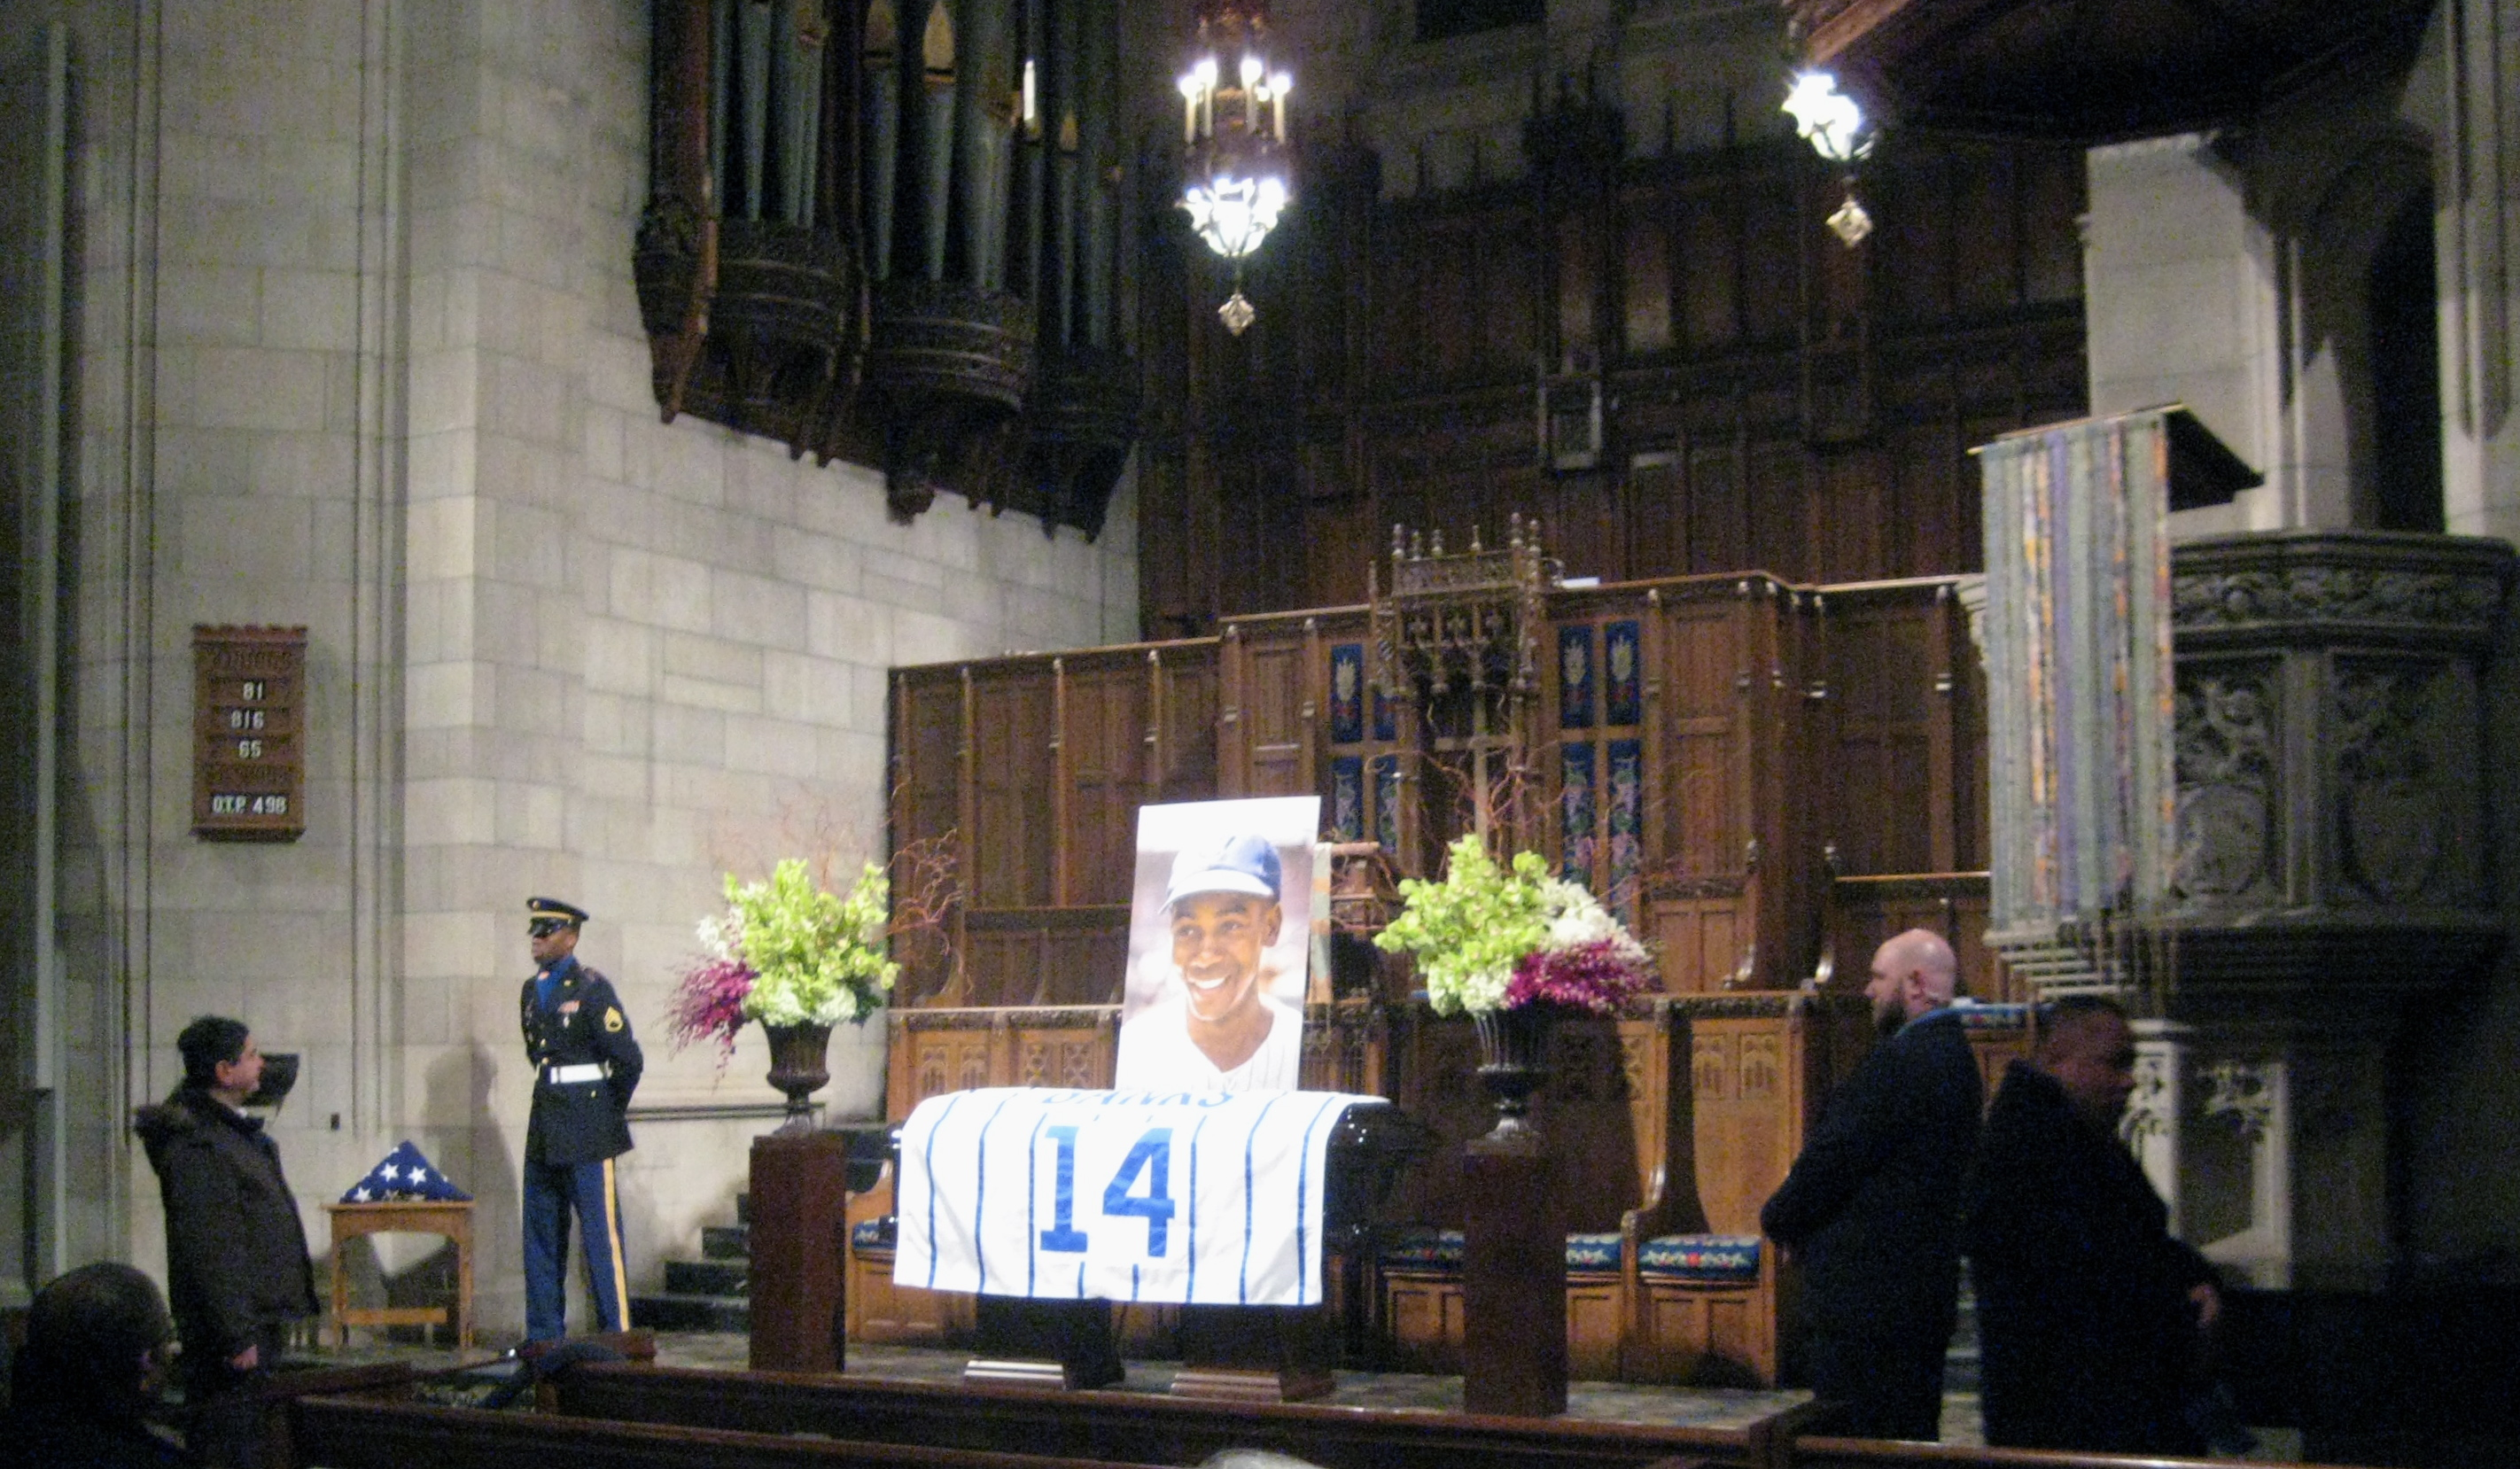 Saying thanks to Ernie Banks, #14 forever